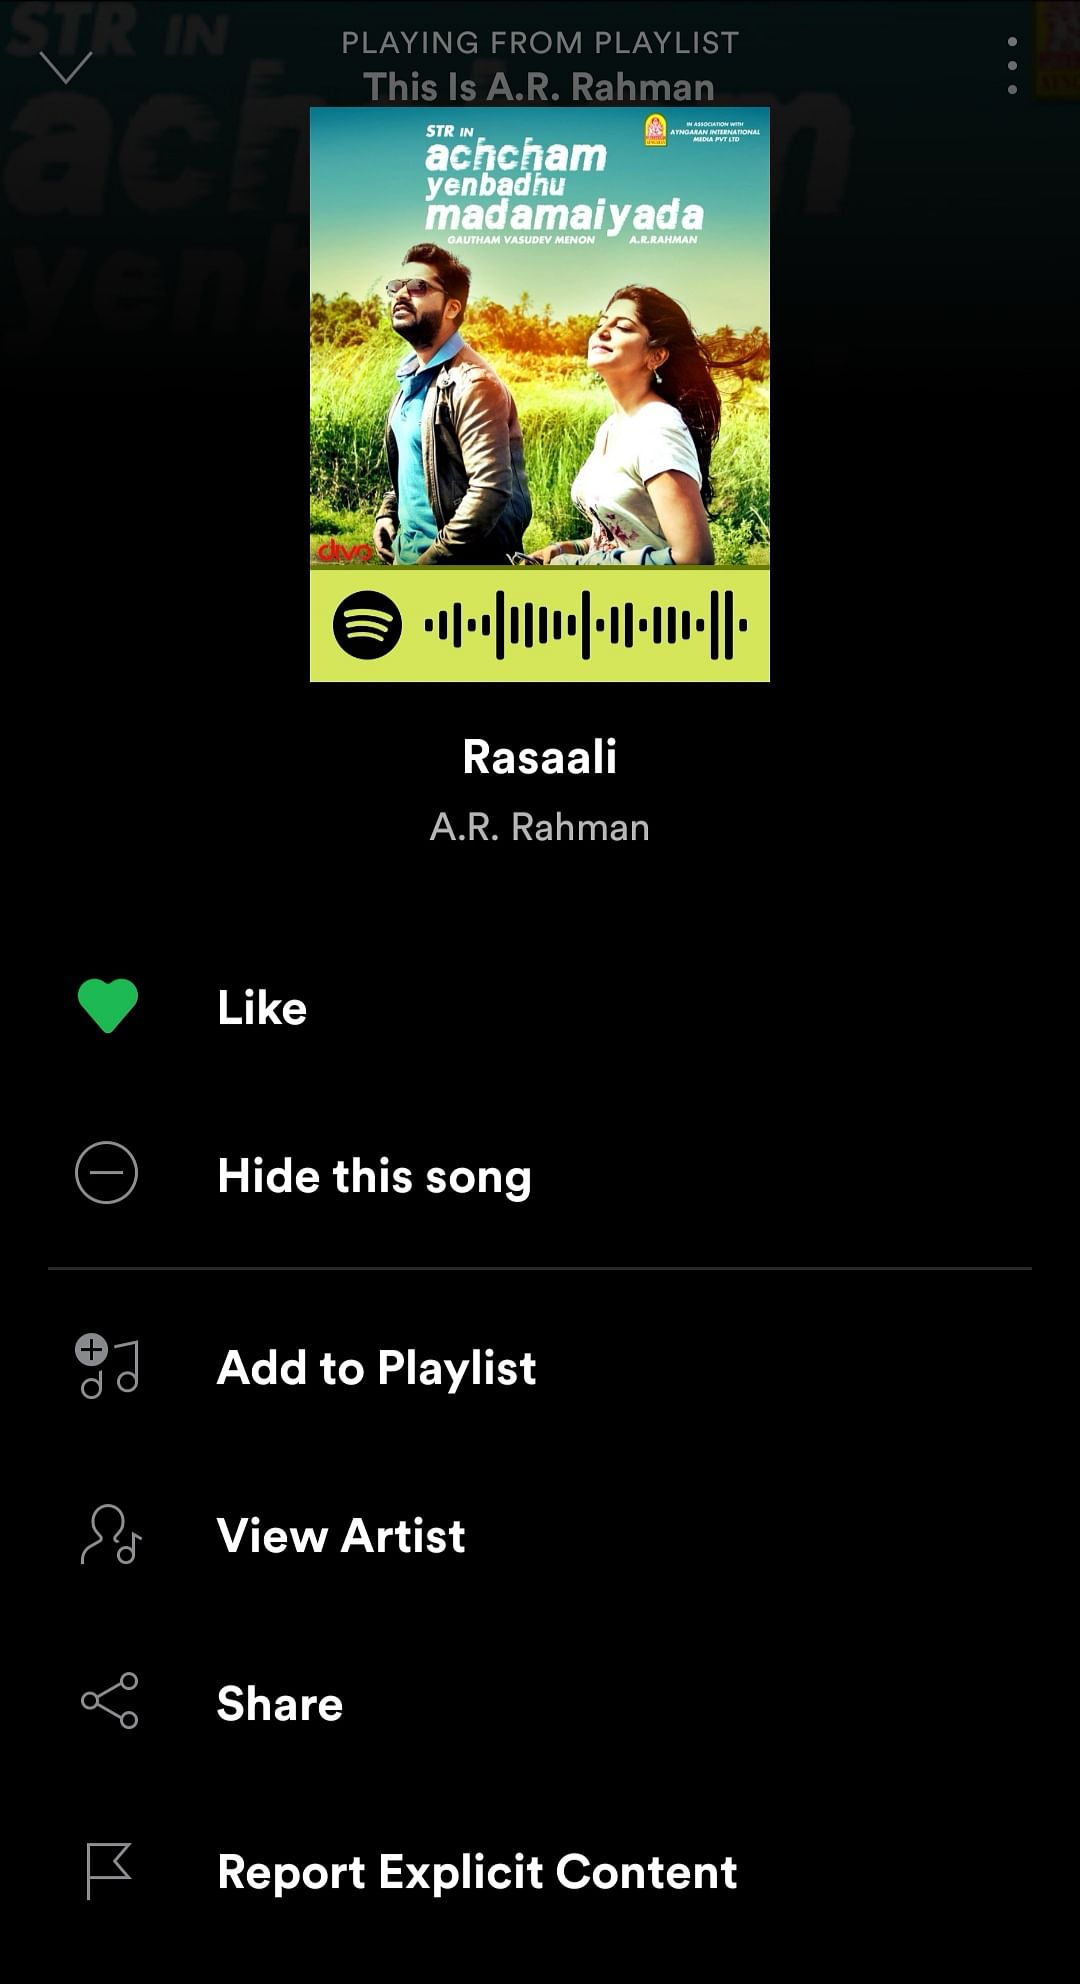 App Fridays] Spotify charms India in a week, moves towards retaining